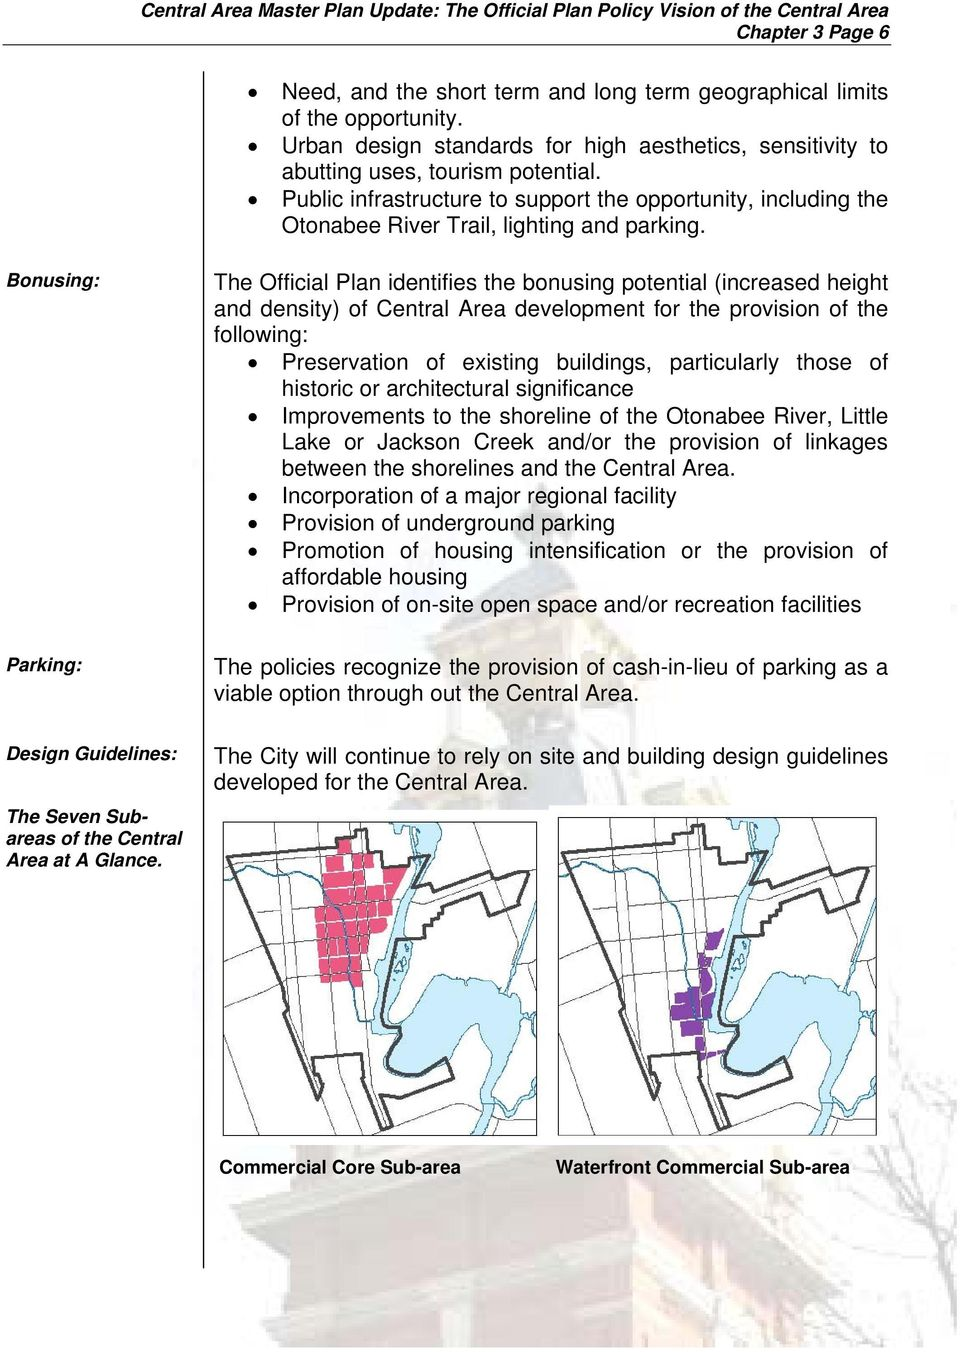 Bonusing: The Official Plan identifies the bonusing potential (increased height and density) of Central Area development for the provision of the following: Preservation of existing buildings,